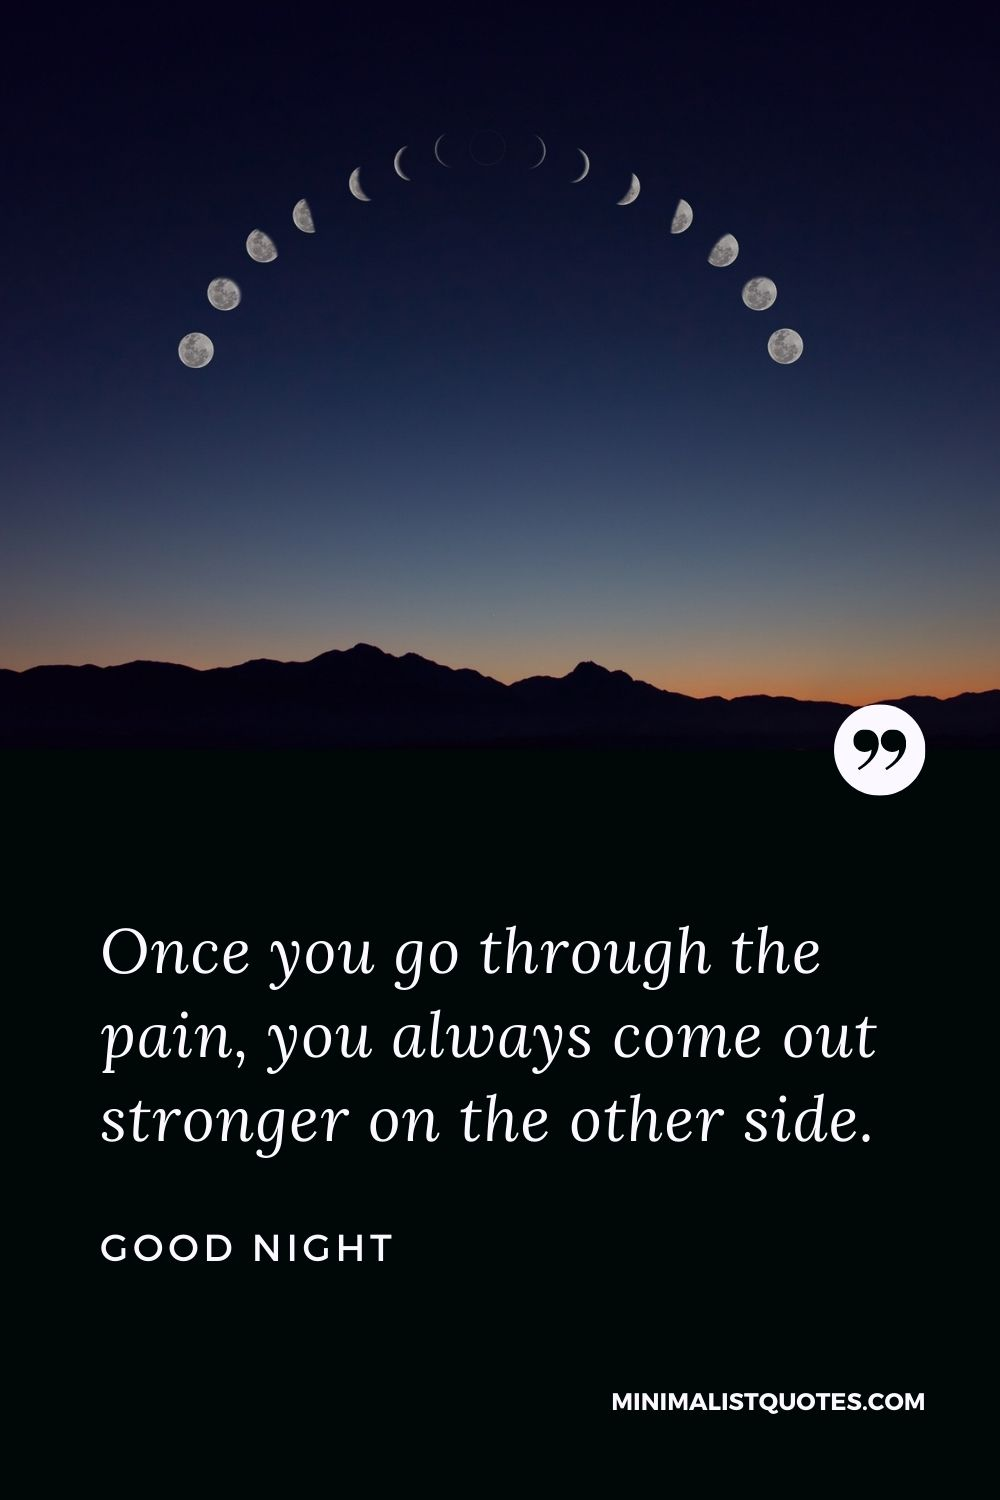 Good Night Wishes - Once you go through the pain, you always come out stronger on the other side.